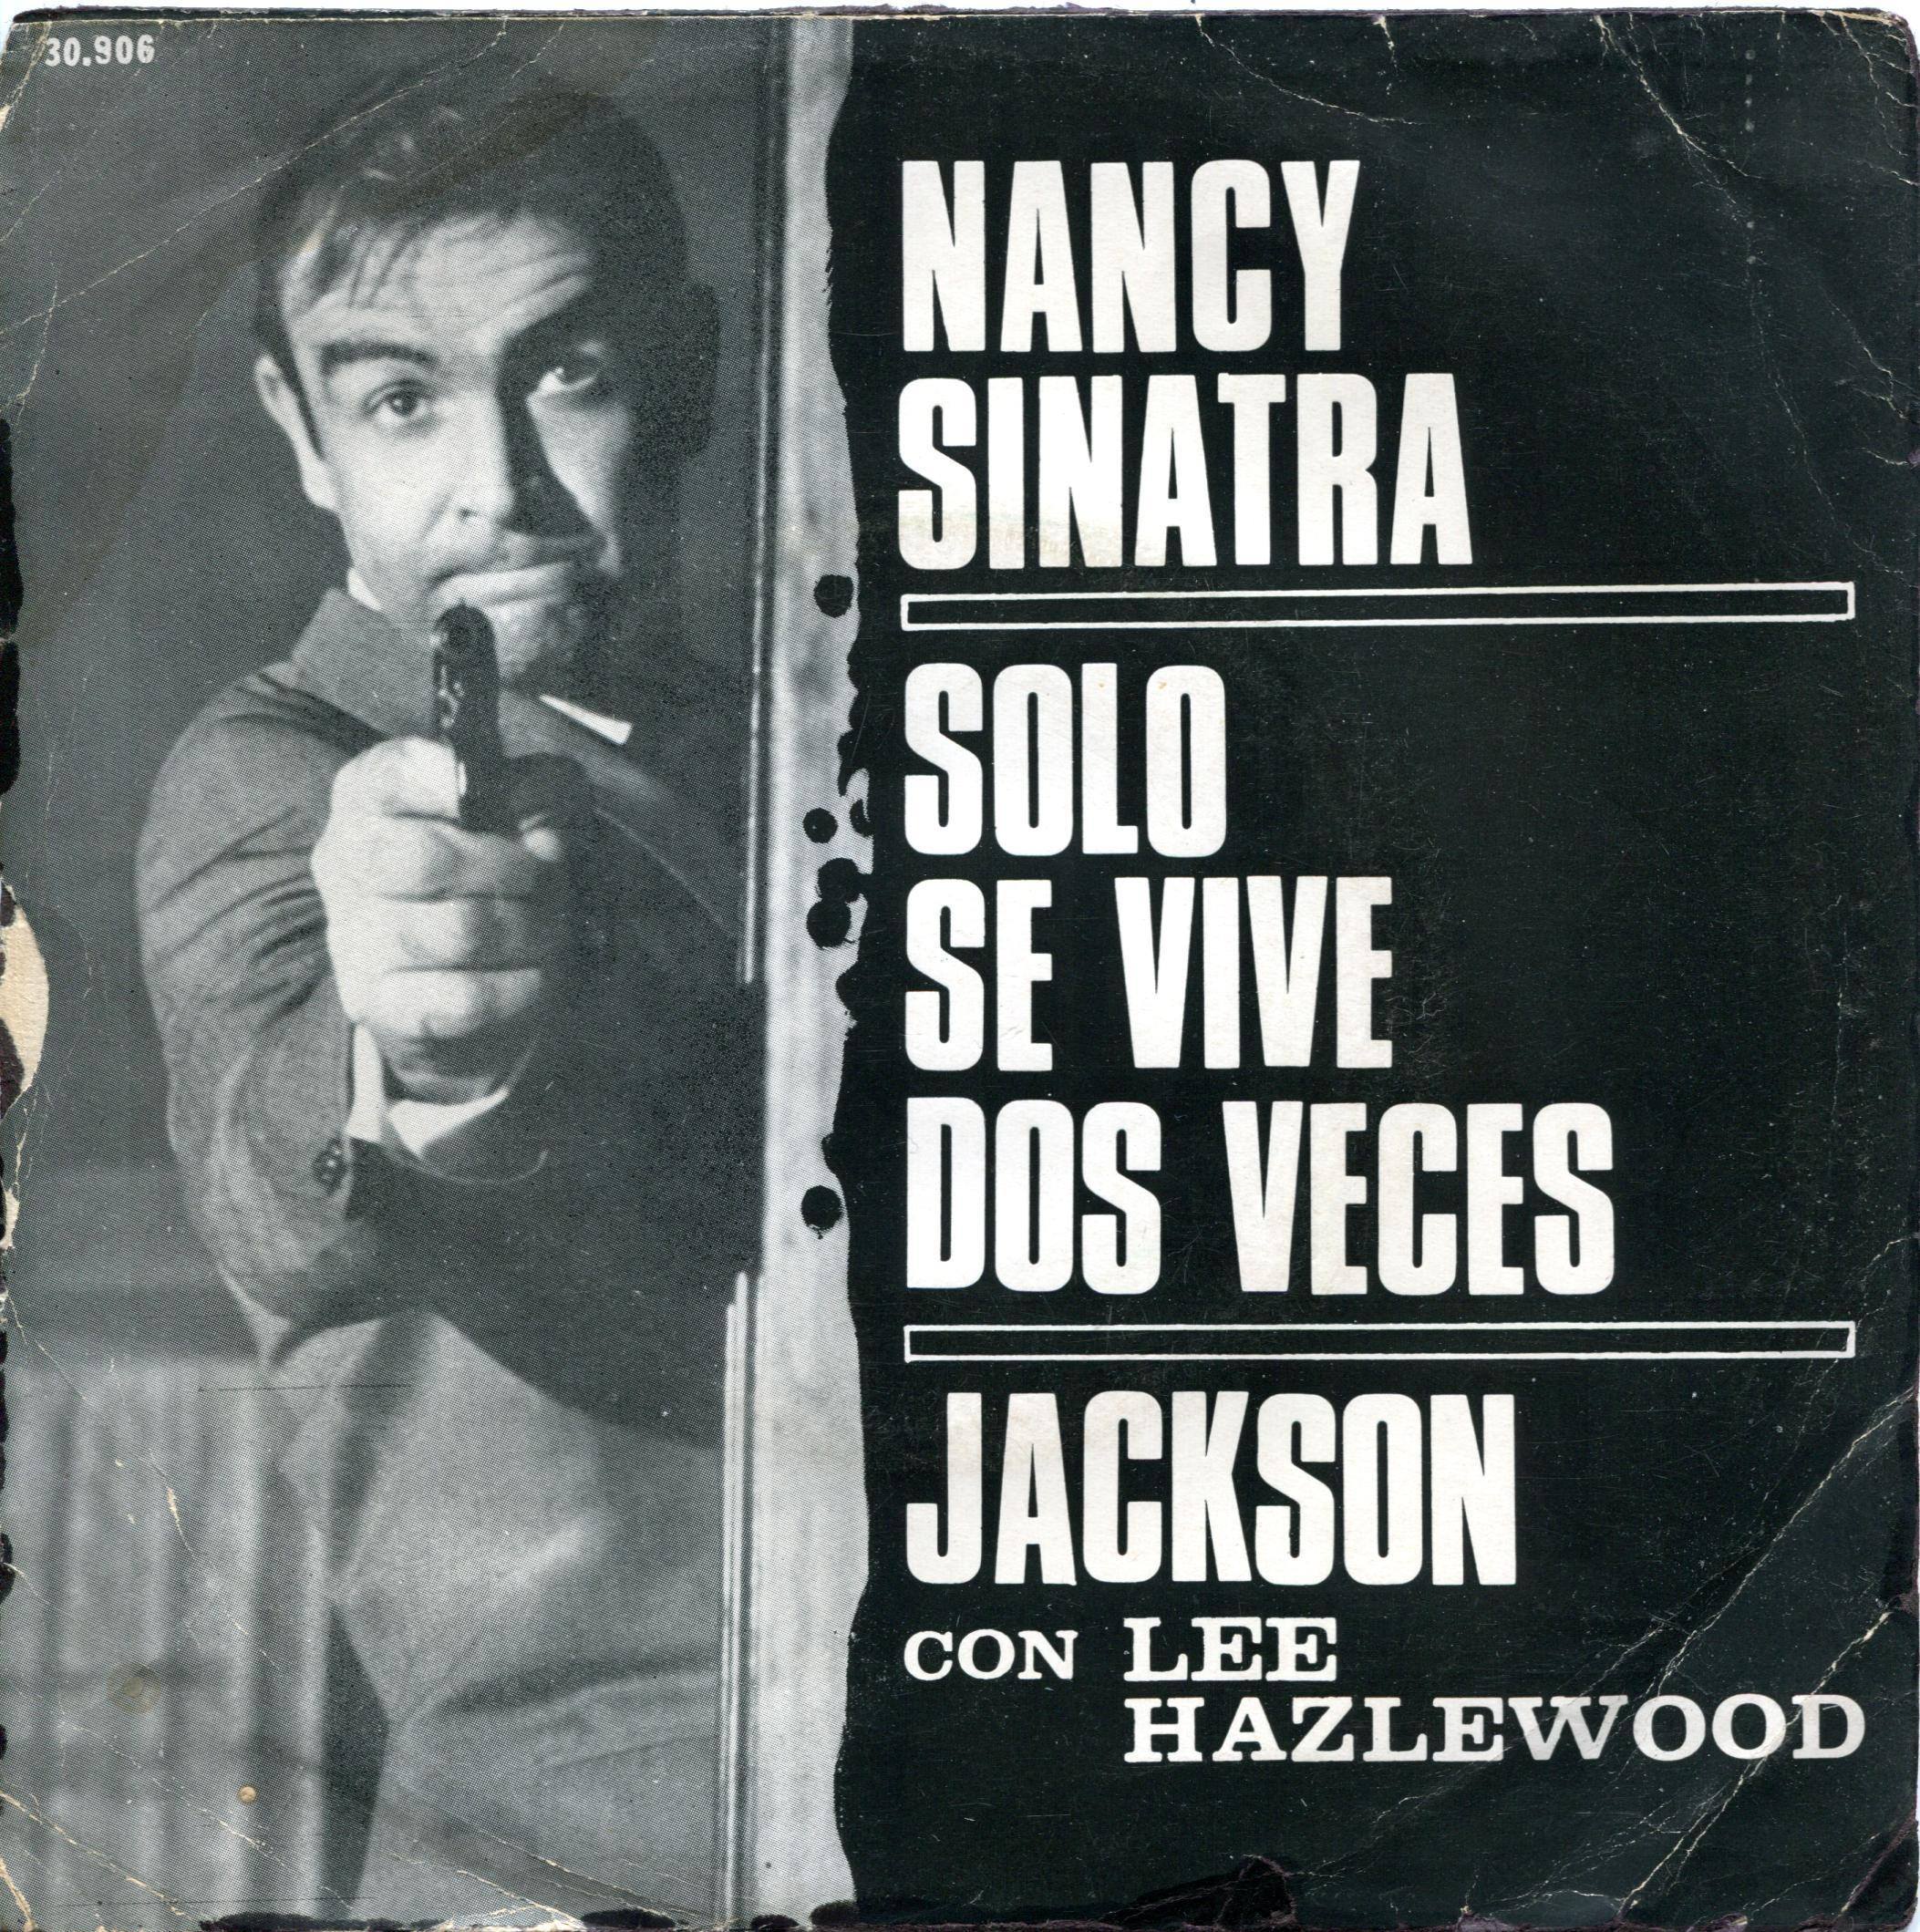 Nancy Sinatra & Lee Hazlewood Music Hall 30.906 : 1967 : Argentina